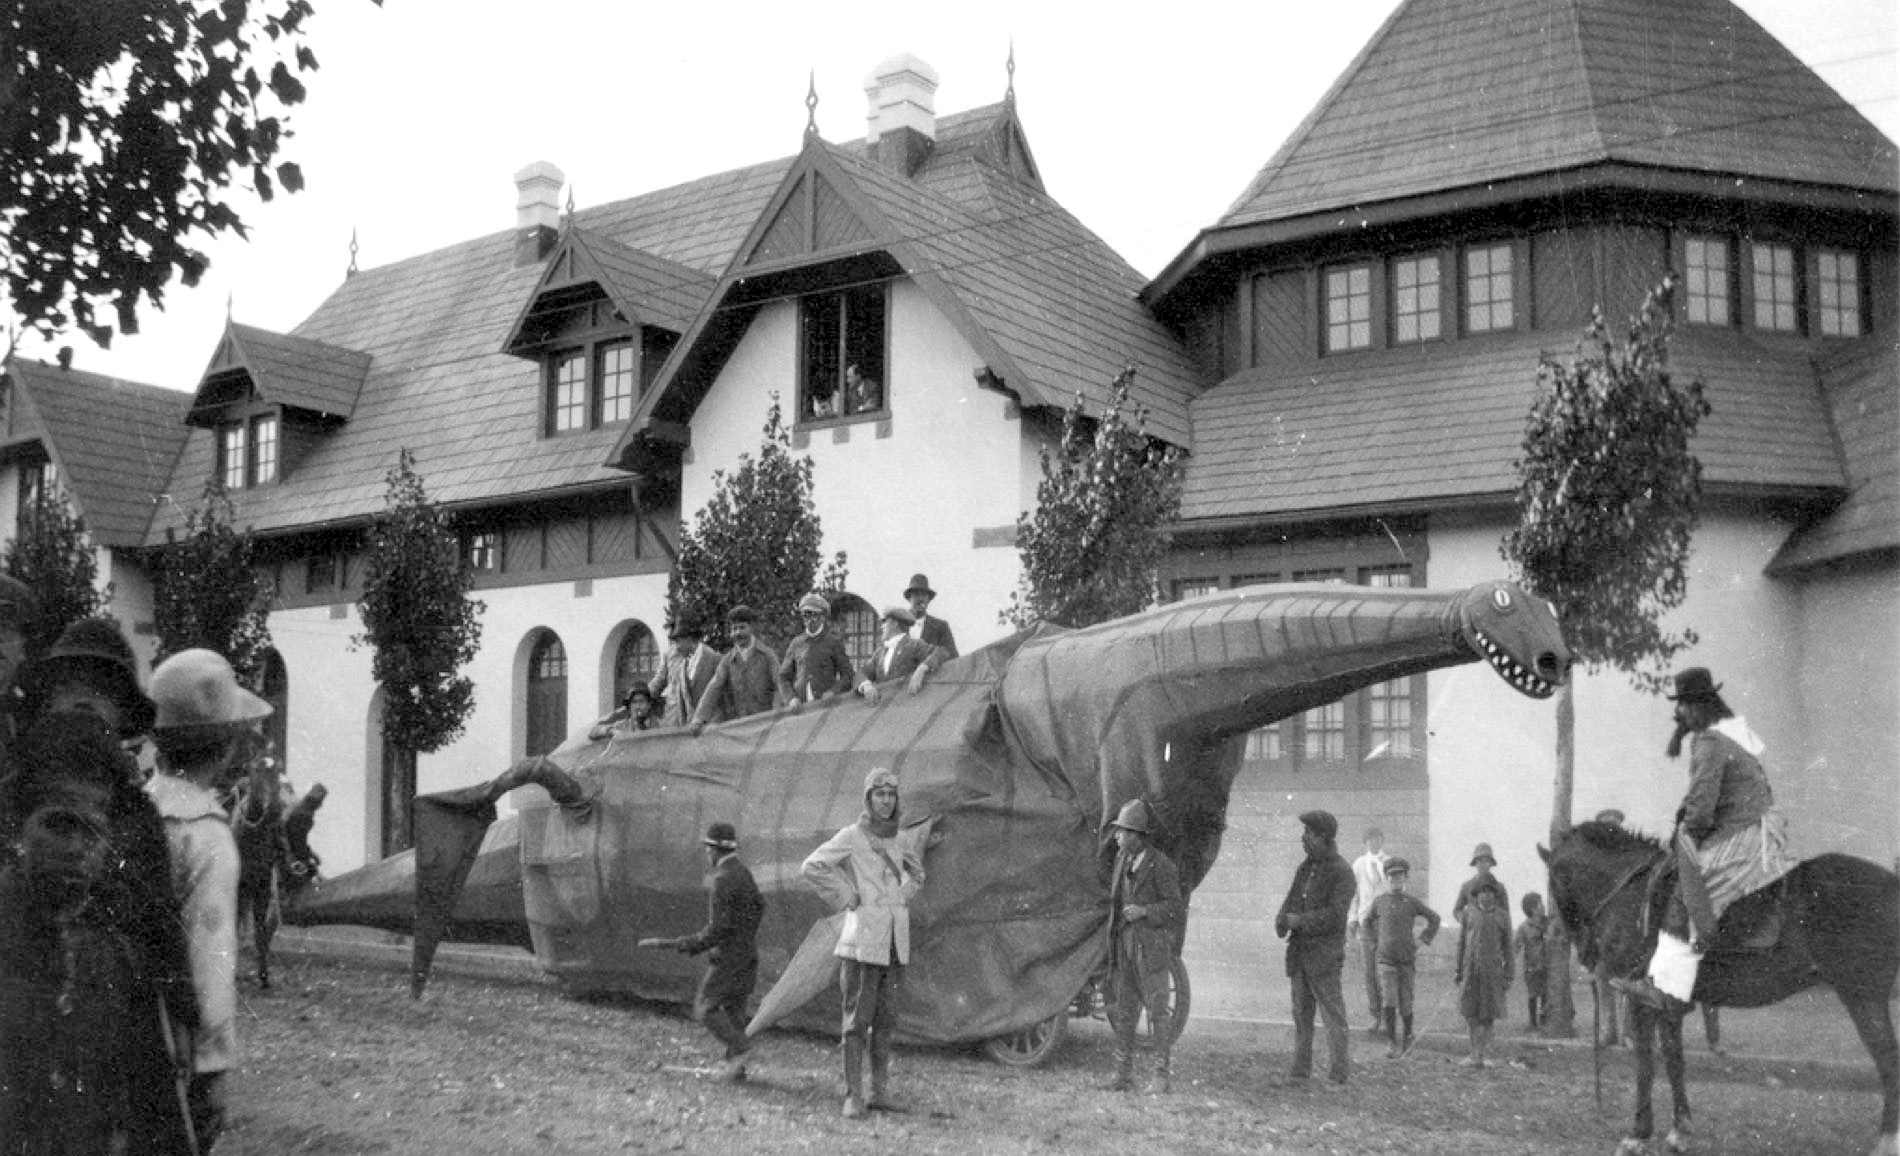 Carnival float of Plesiosaur (1923)